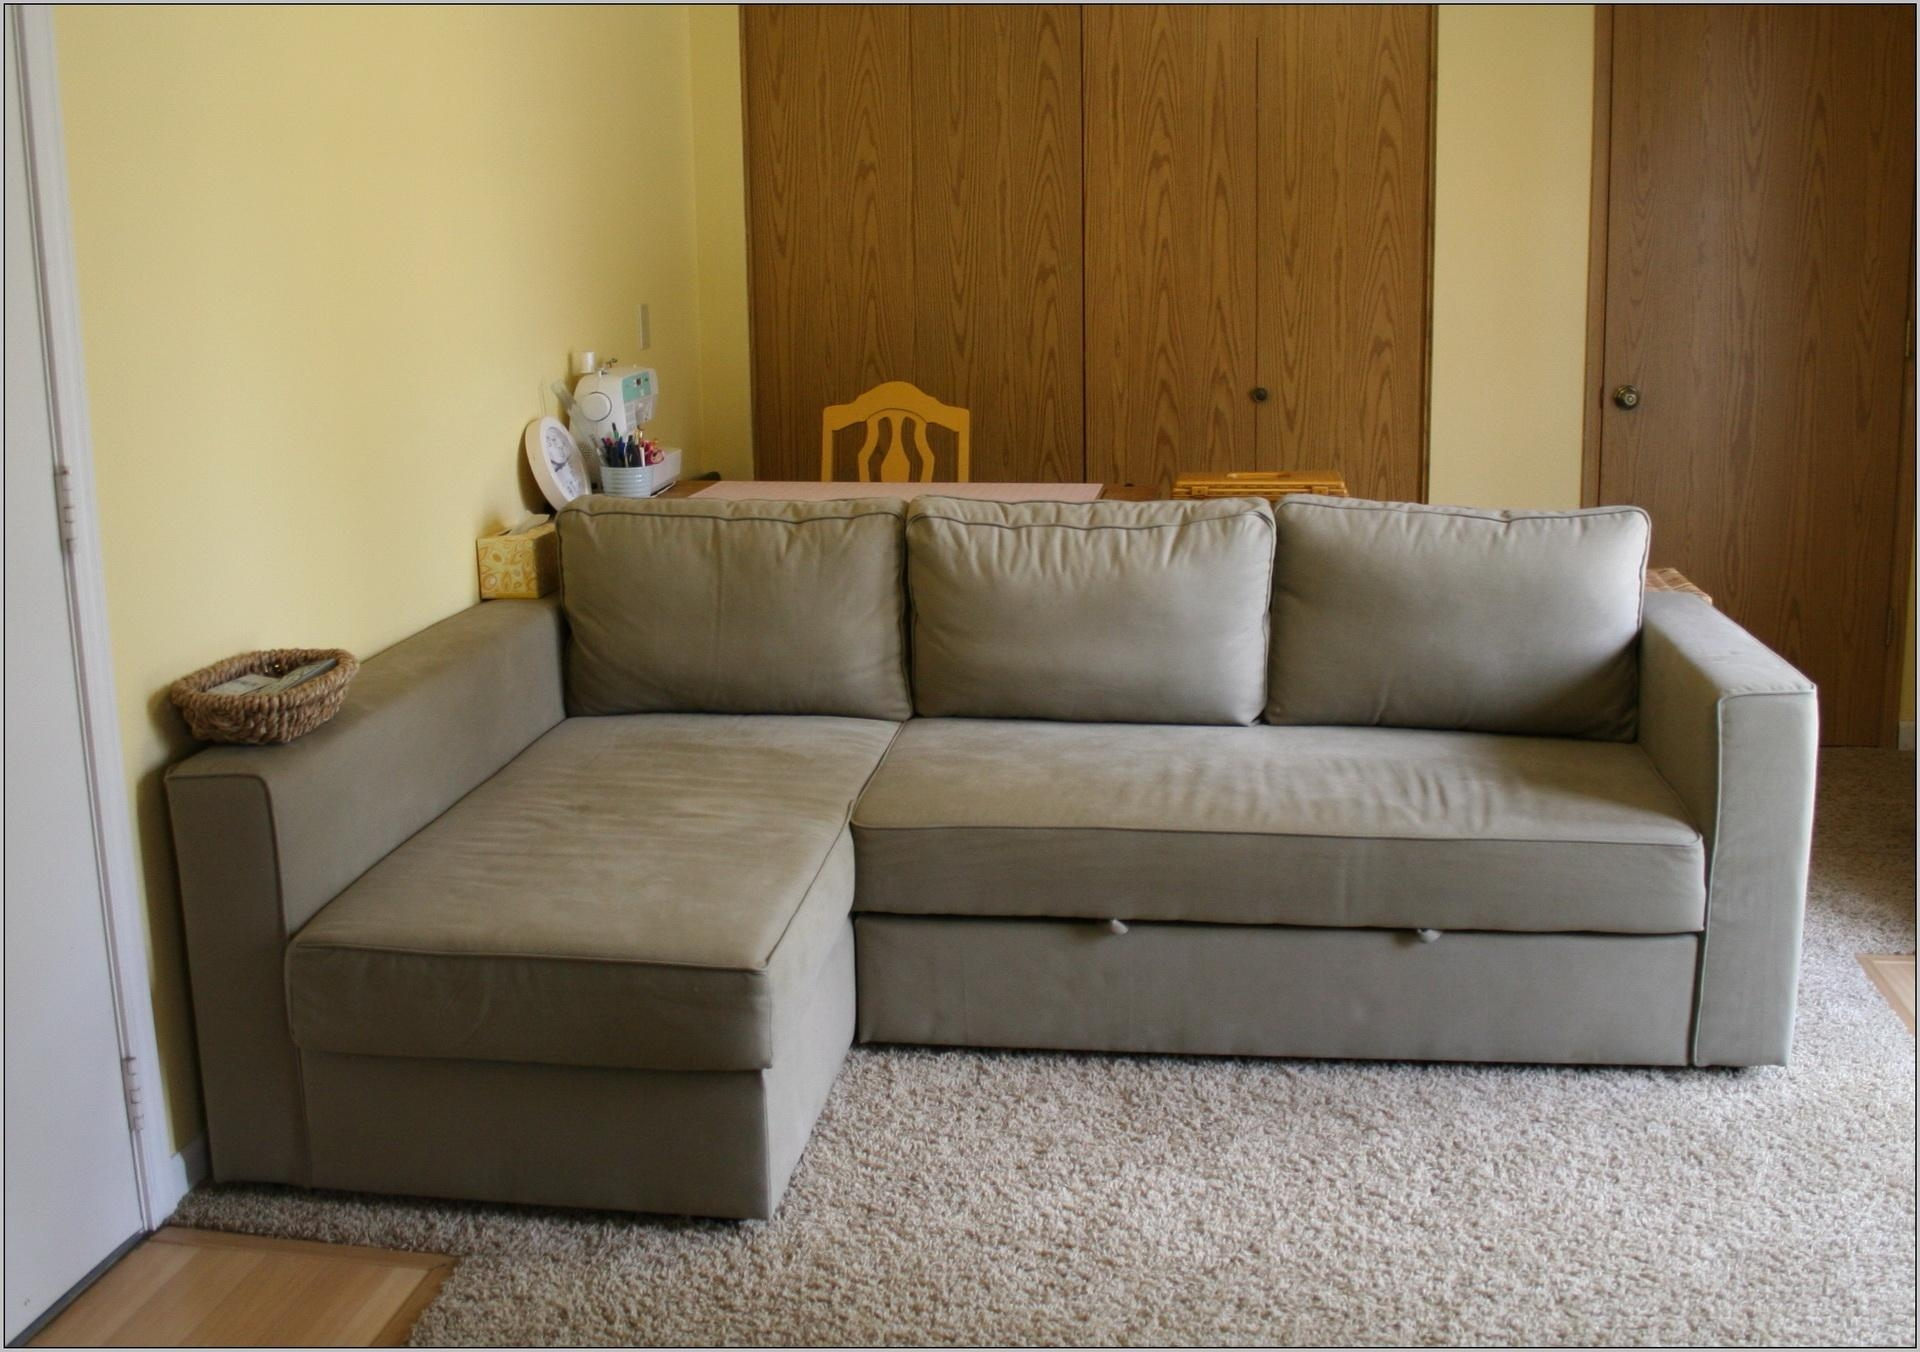 Furniture: Ikea Sleeper Sofa | Sleeper Sectional Sofa Ikea With Sleeper Sofa Sectional Ikea (Image 9 of 20)